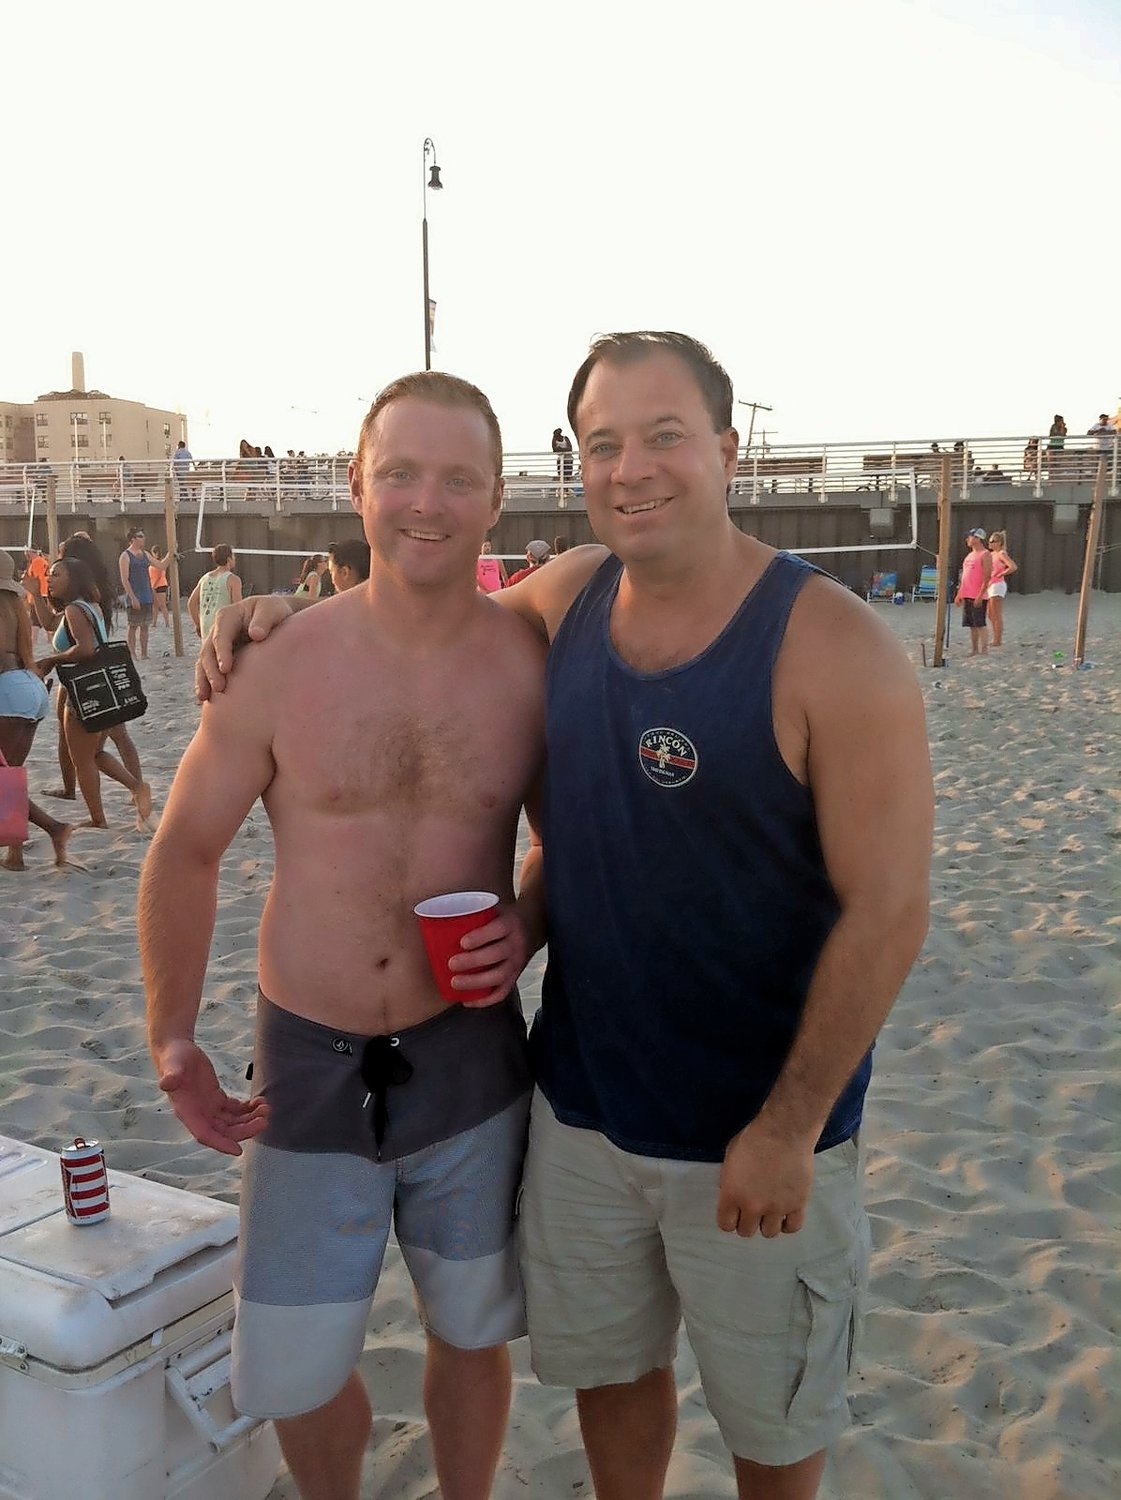 Moschella, right, with friend Jimmy Kennedy during beach volleyball in 2015.